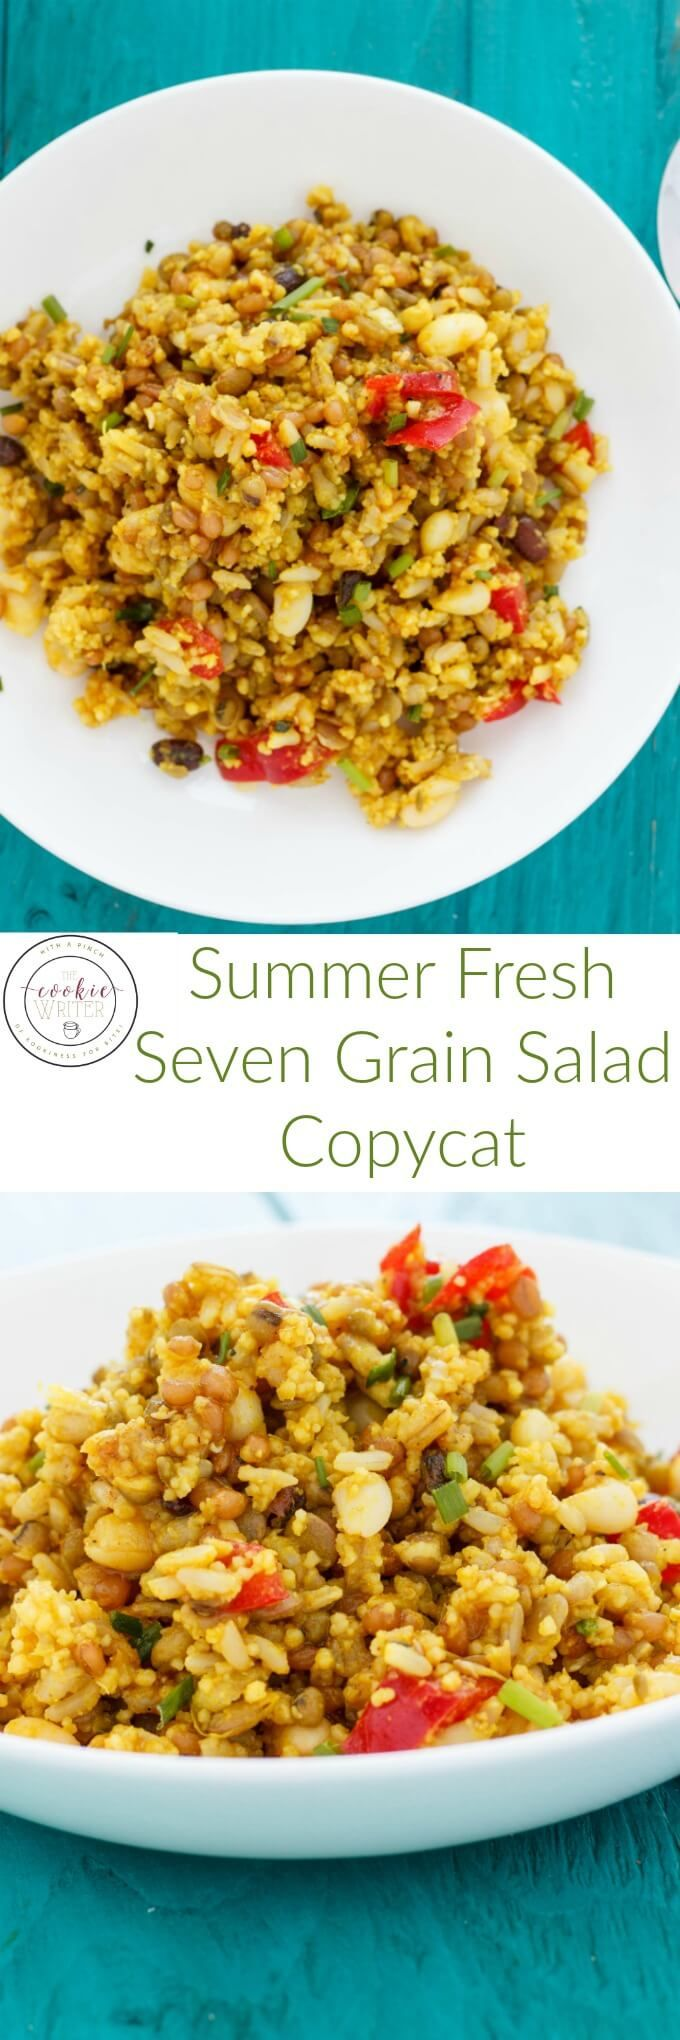 Summer Fresh Seven Grain Salad Copycat Recipe | http://thecookiewriter.com | @thecookiewriter | #salad | A copycat version of the awesome salad from Summer Fresh! Vegan and healthy!